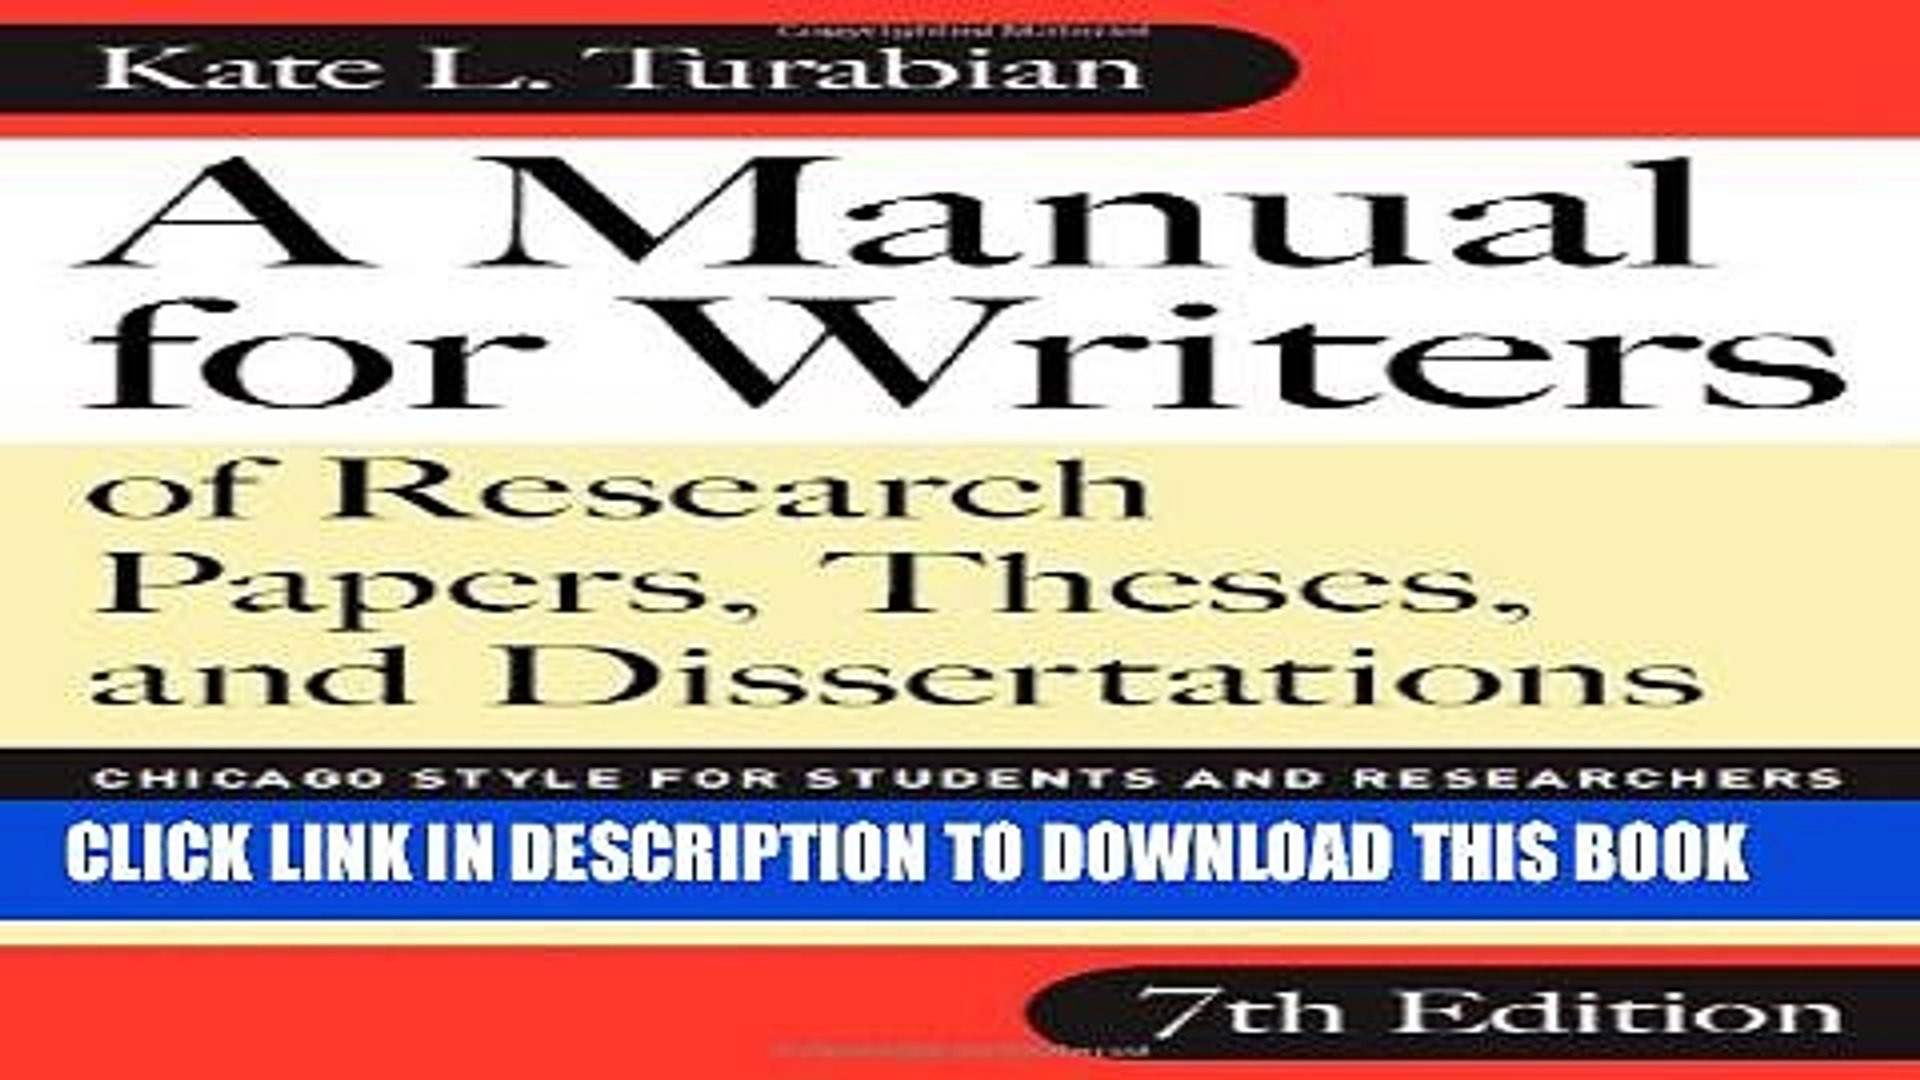 021 Research Paper Manual For Writers Of Papers Theses And Dissertations X1080 Sensational A Eighth Edition Pdf 9th 8th 1920